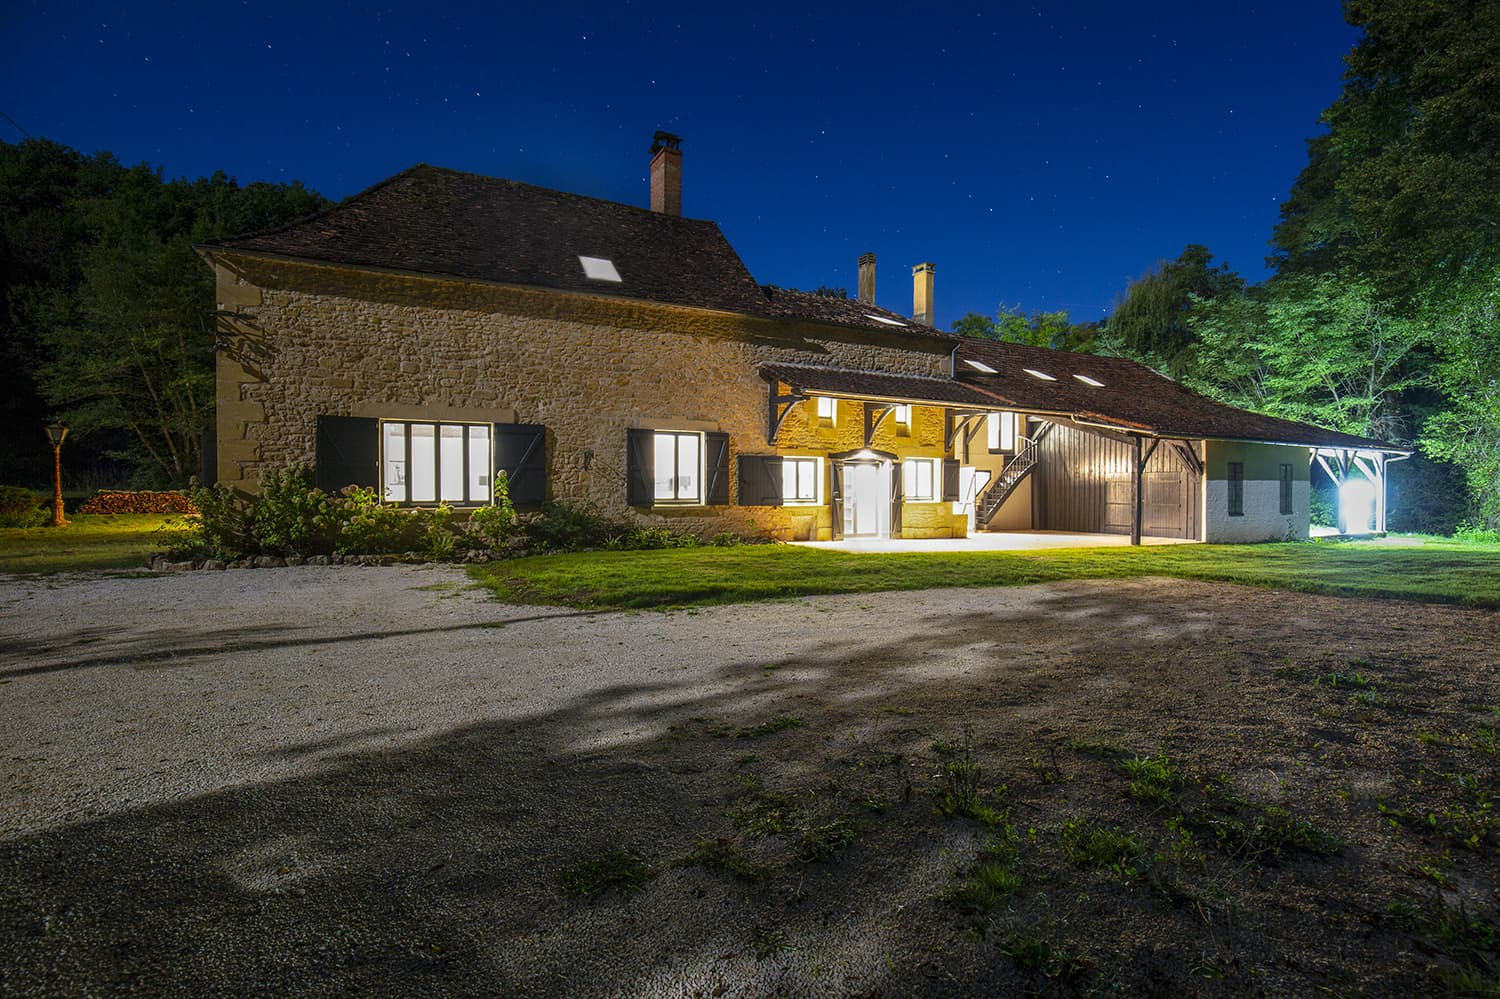 Holiday accommodation in Saint-Avit-Sénieur, Nouvelle-Aquitaine at night